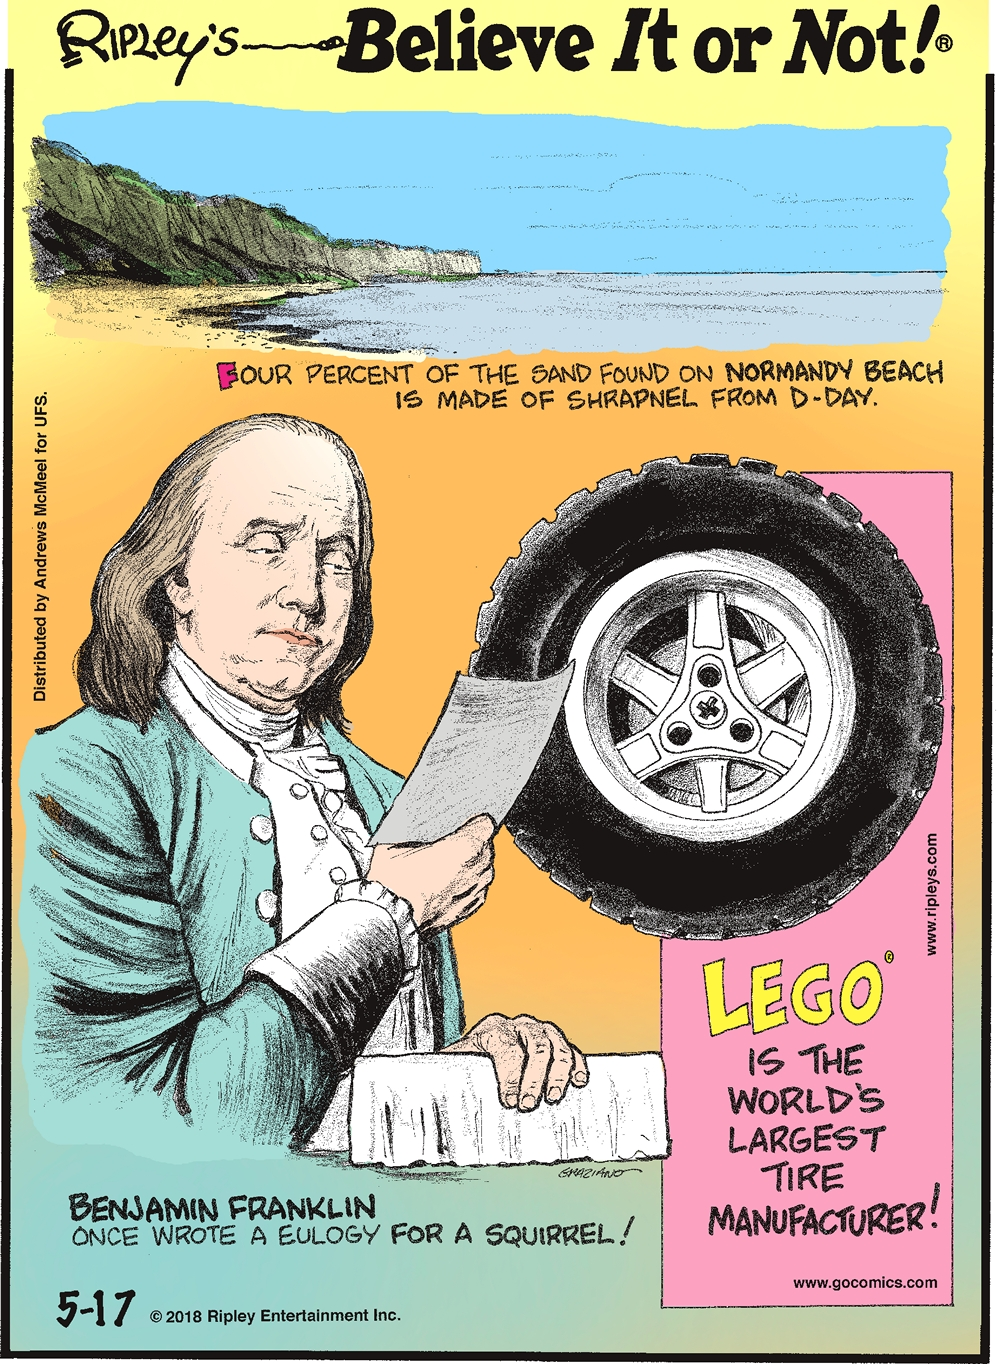 Four percent of the sand found on Normandy Beach is made of shrapnel from D-Day.-------------------- Benjamin Franklin once wrote a eulogy for a squirrel!-------------------- LEGO is the world's largest tire manufacturer!